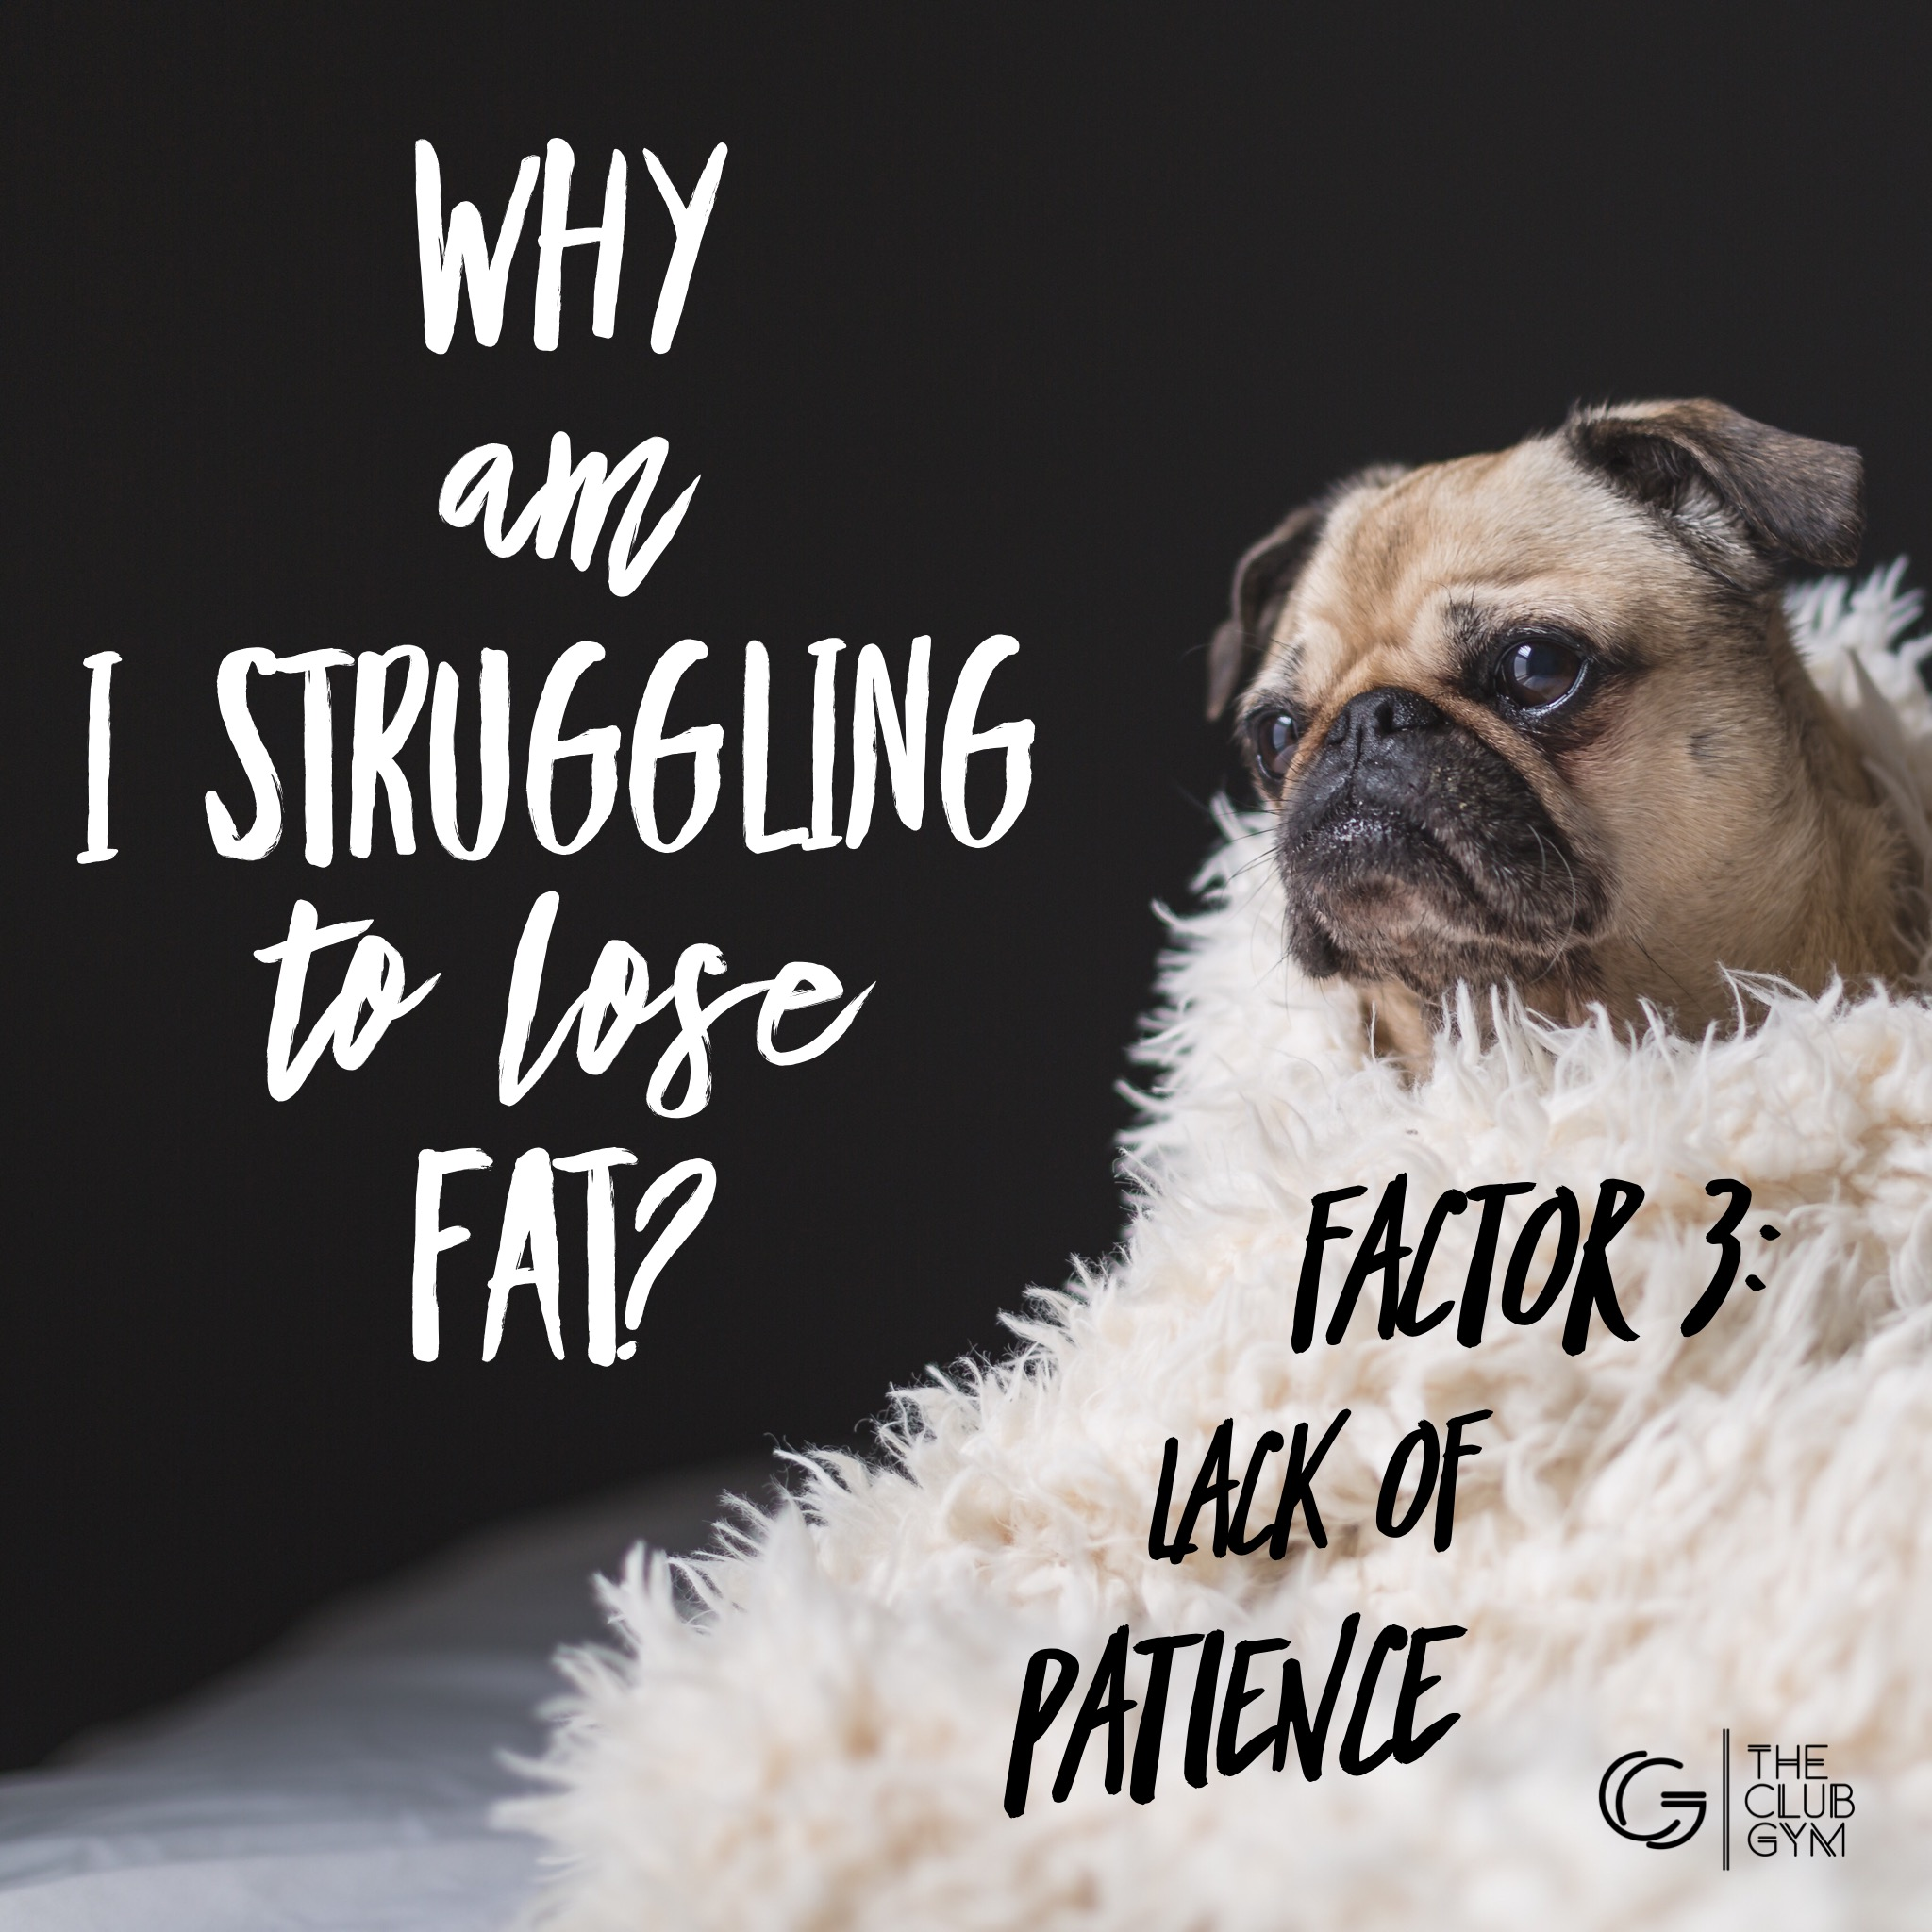 Why am I struggling to lose weight - lack of patience